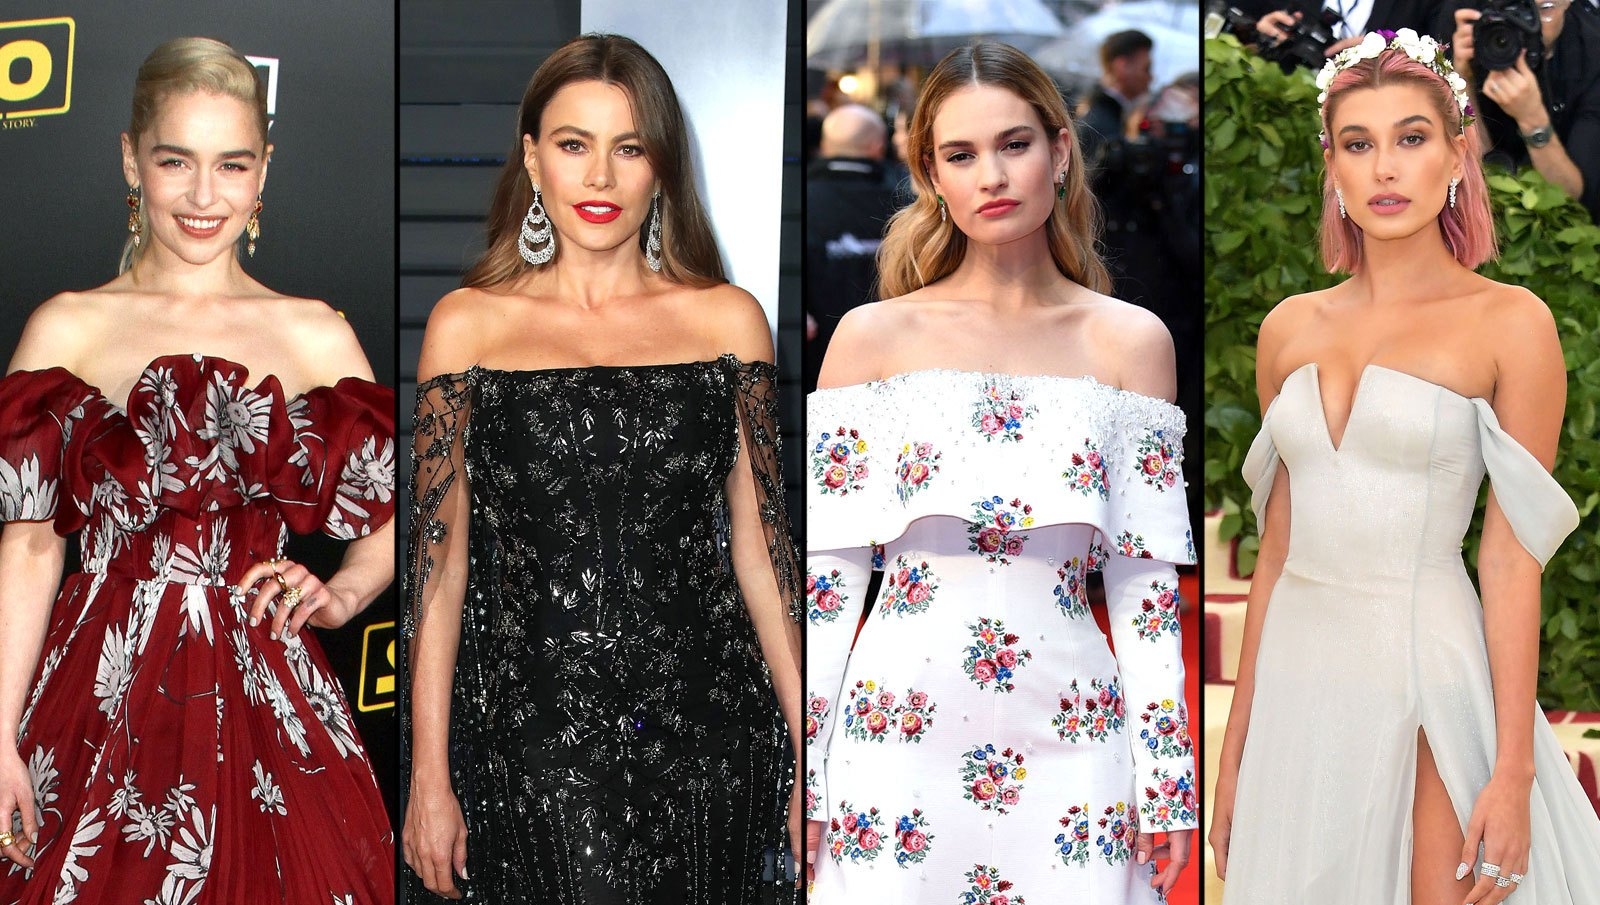 Emilia Clarke, Sofia Vergara, Lily James, Hailey Baldwin